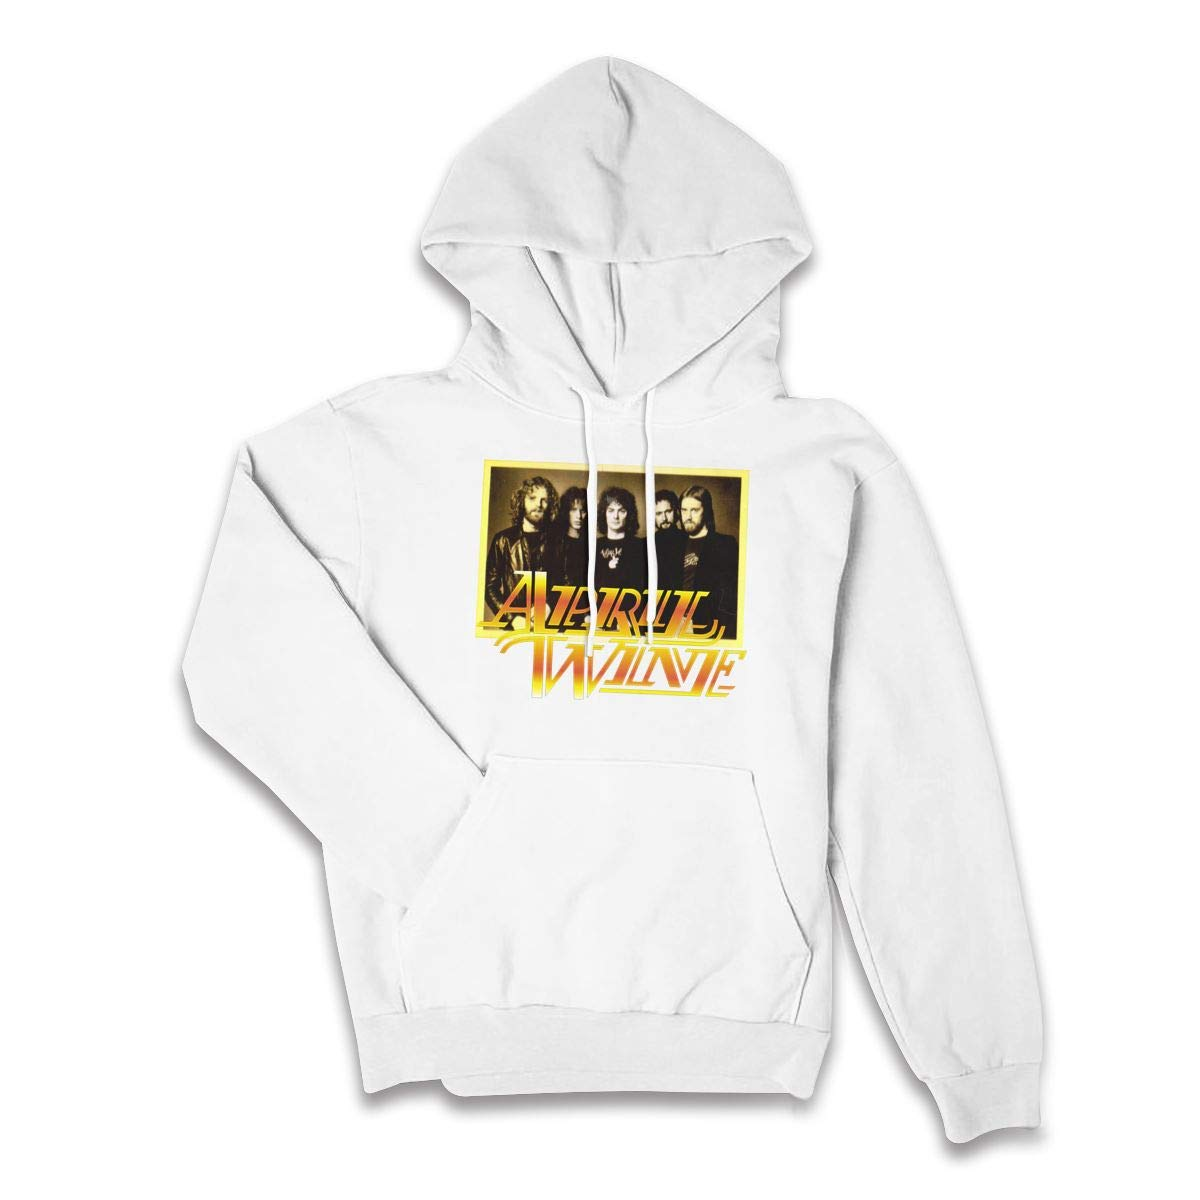 Erman Color Name Retro April Wine 1 Pullover Hooded Shirts With Pocket S